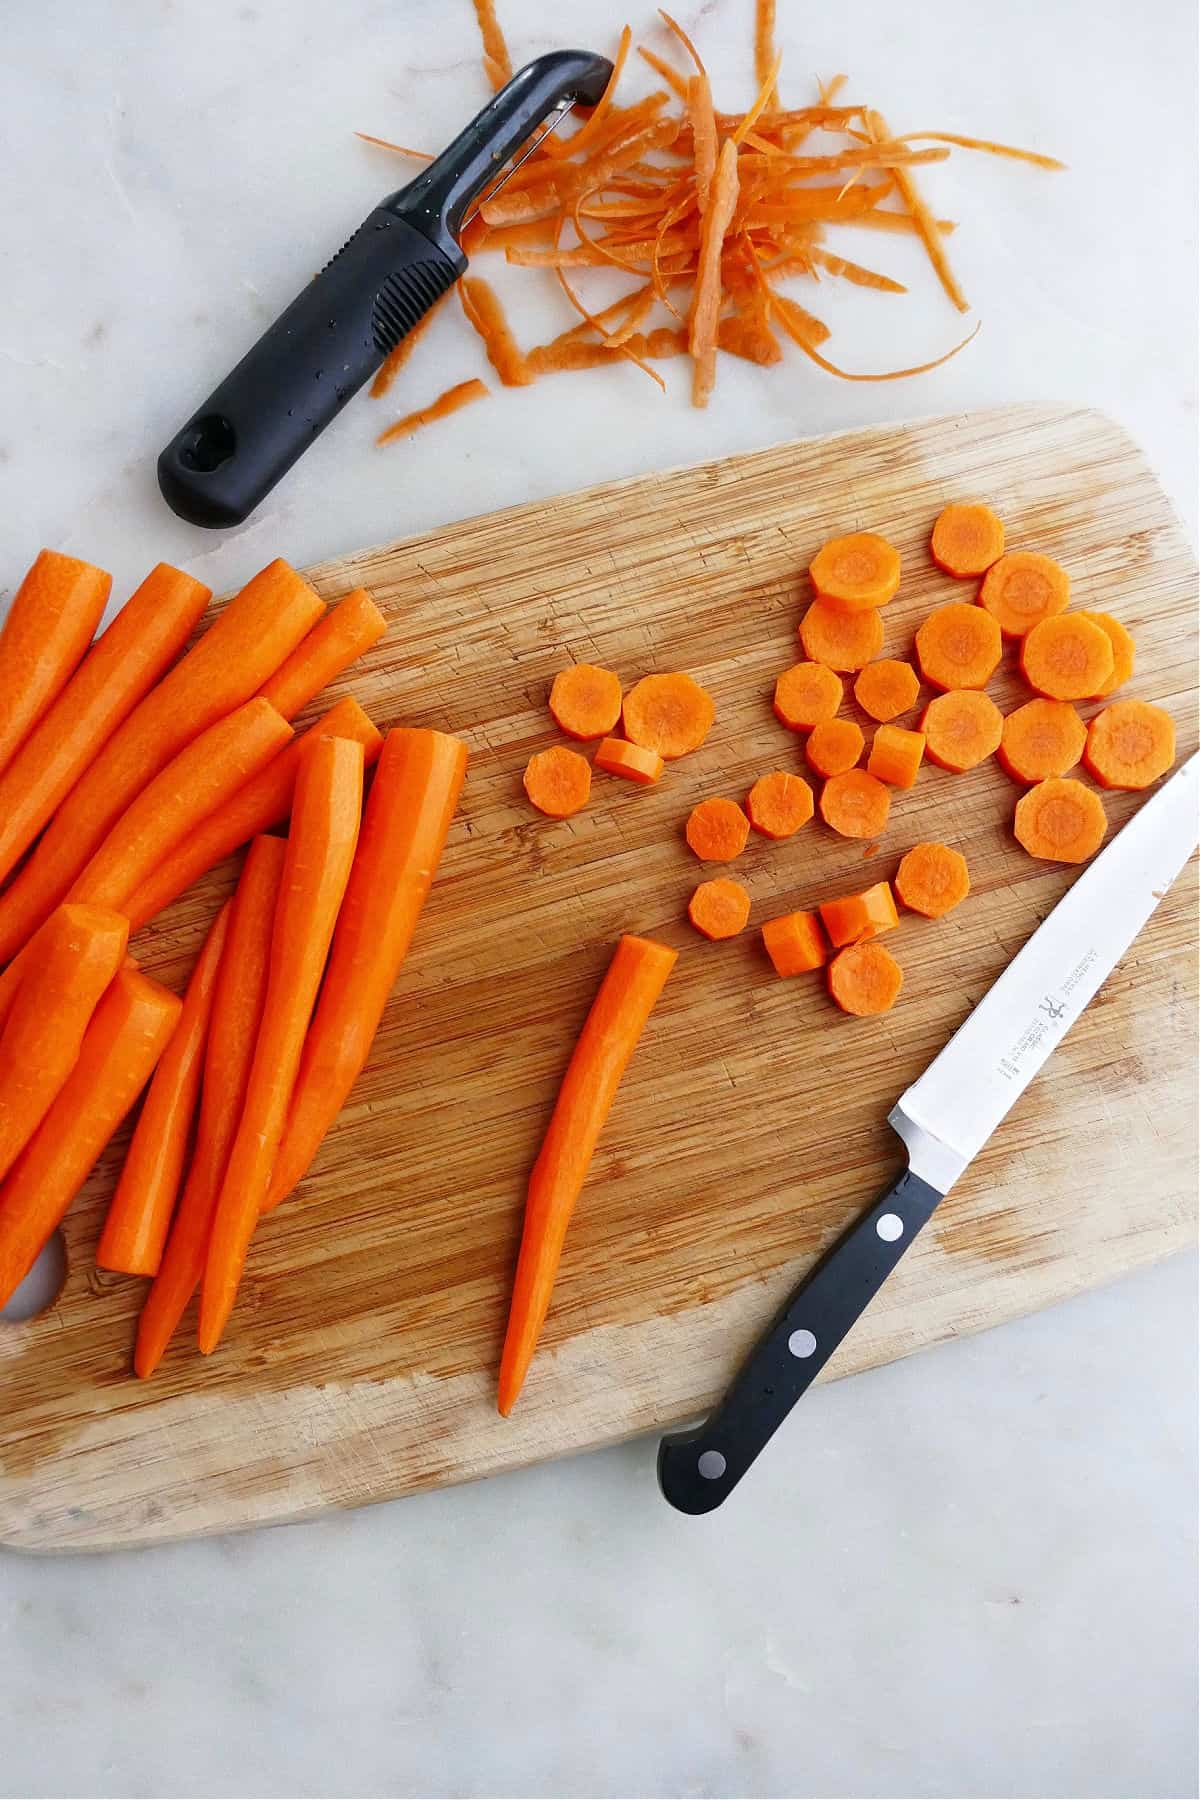 peeled carrots on a cutting board next to carrot slices and peelings